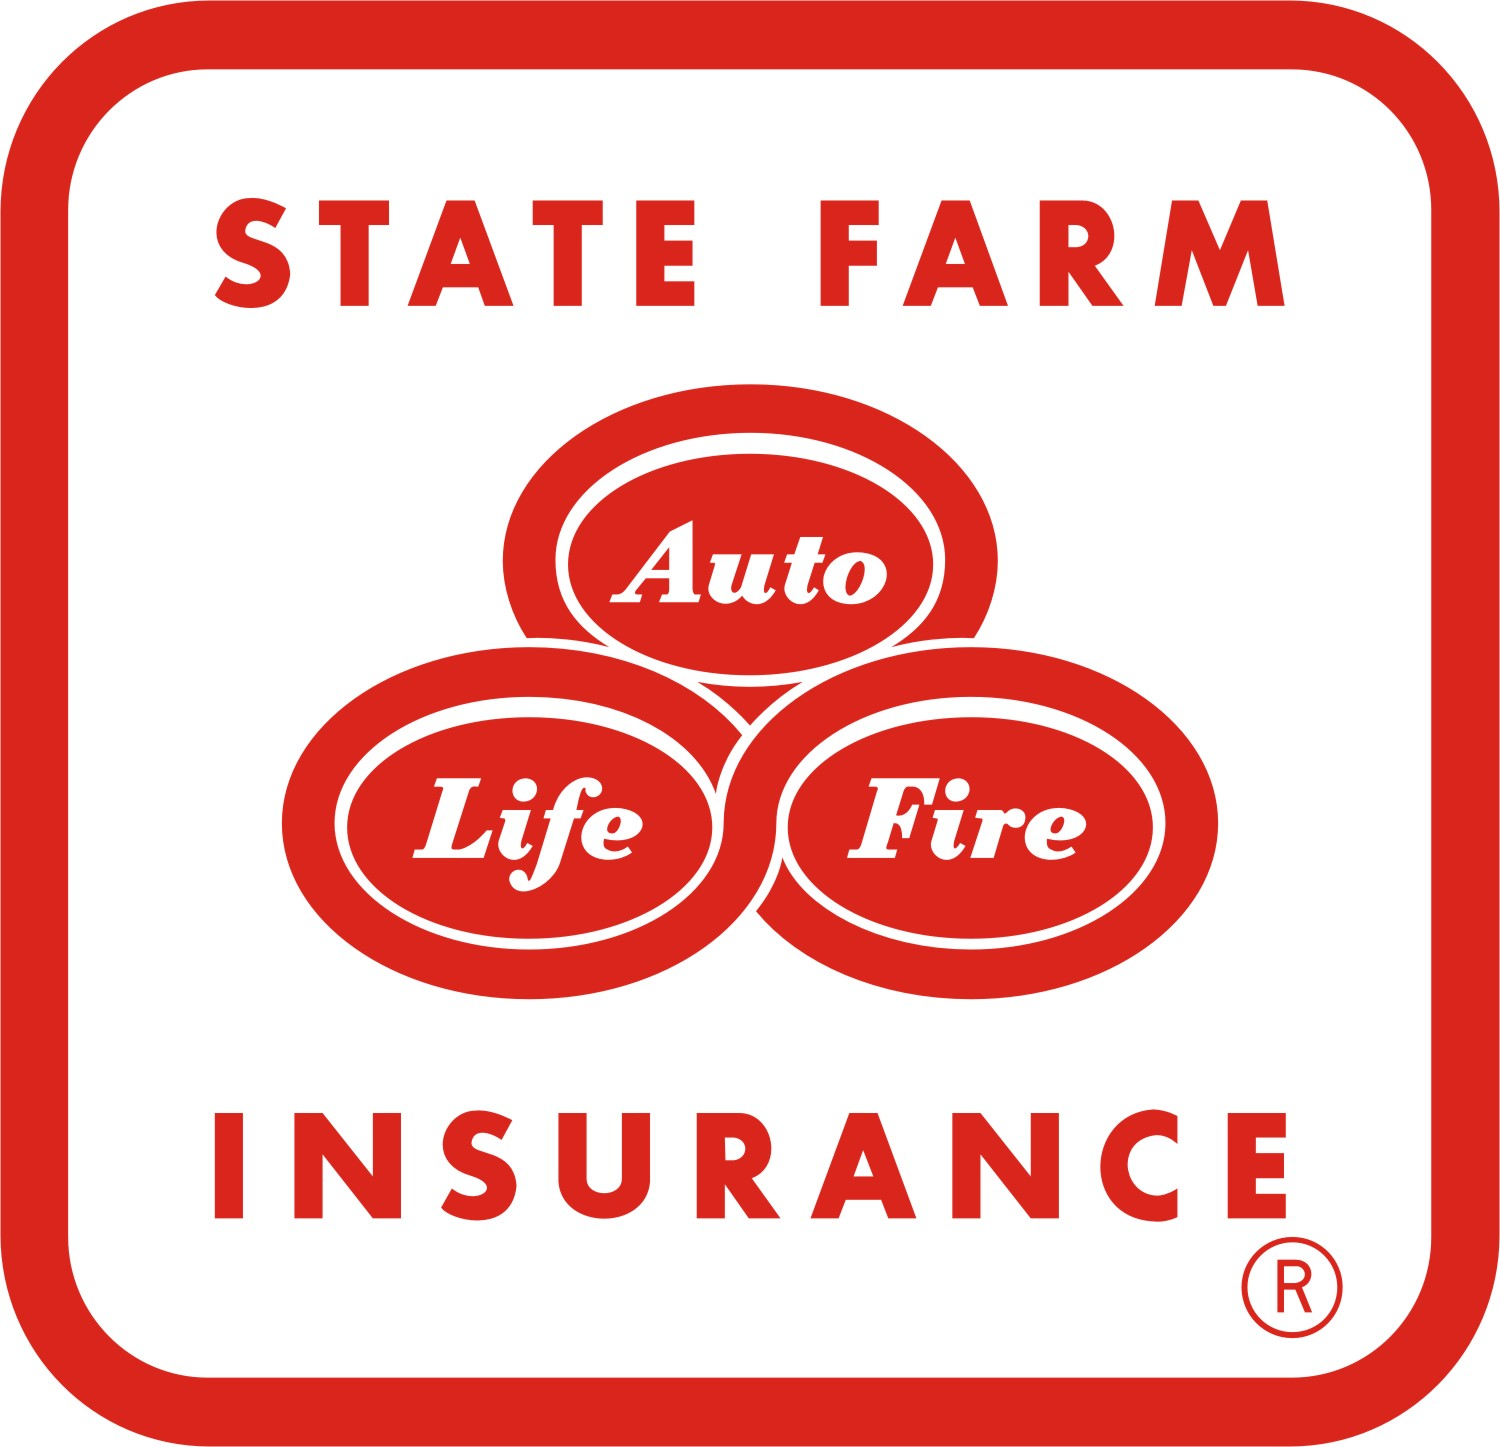 State Farm Life Quote State Farm Insurance Like A Good Neighbor State Farm Is There